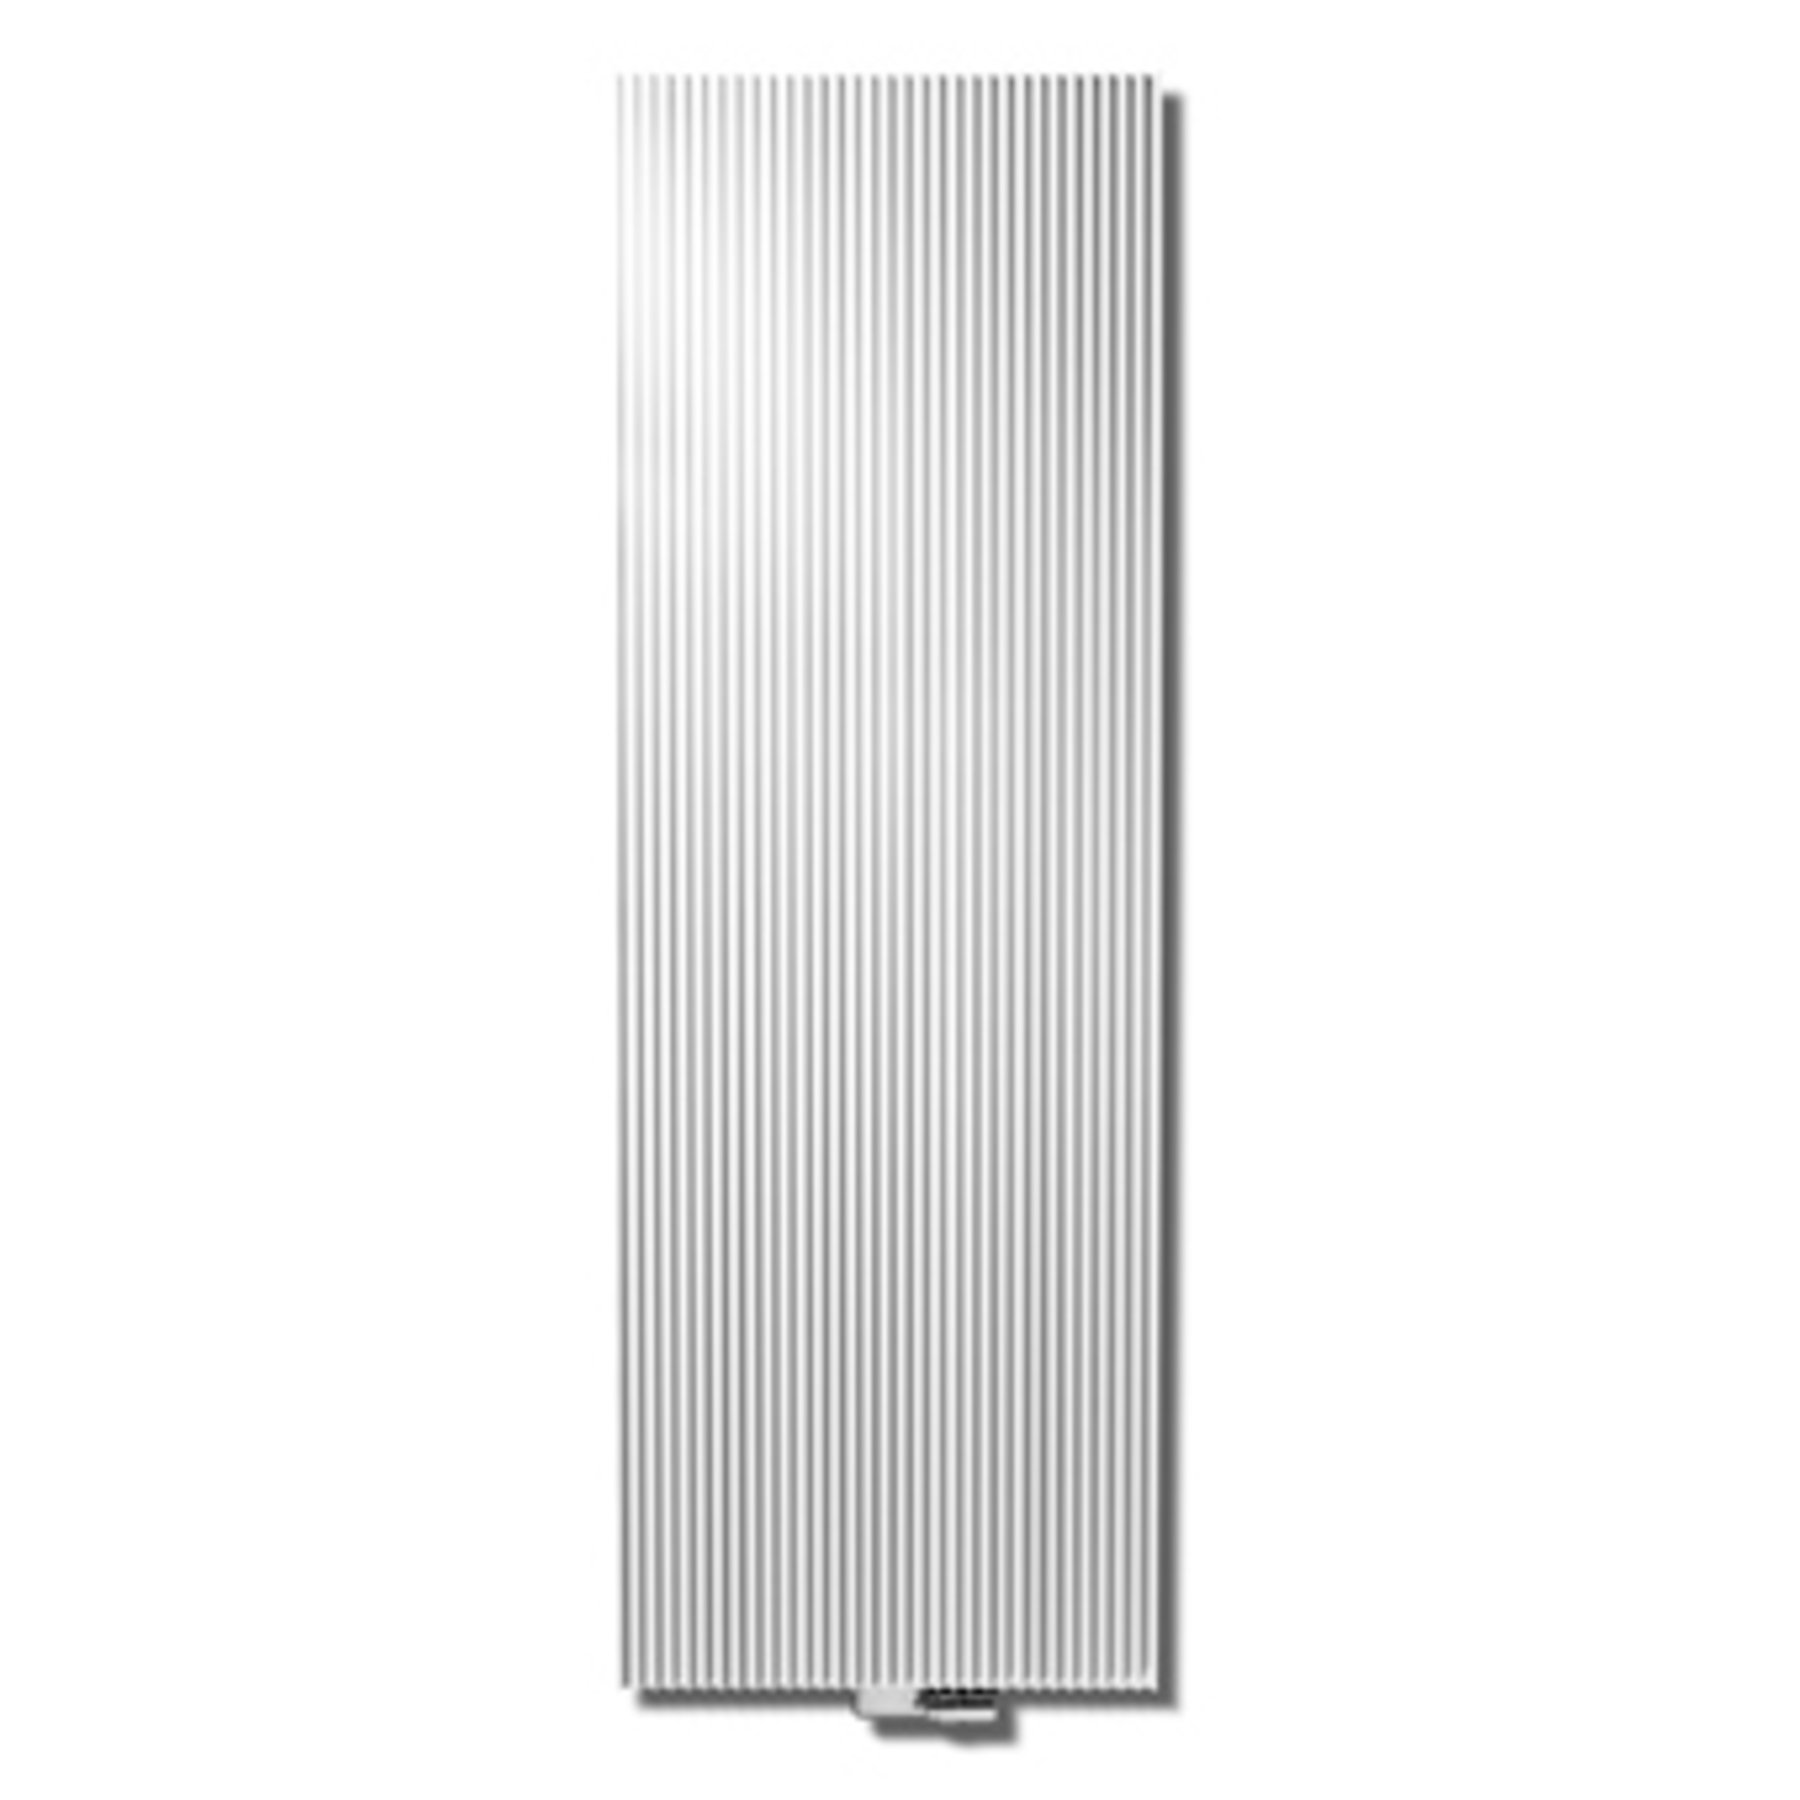 Vasco Canyon designradiator verticaal 1600x605mm 1922 watt aansluiting 66 grijs wit (M303)